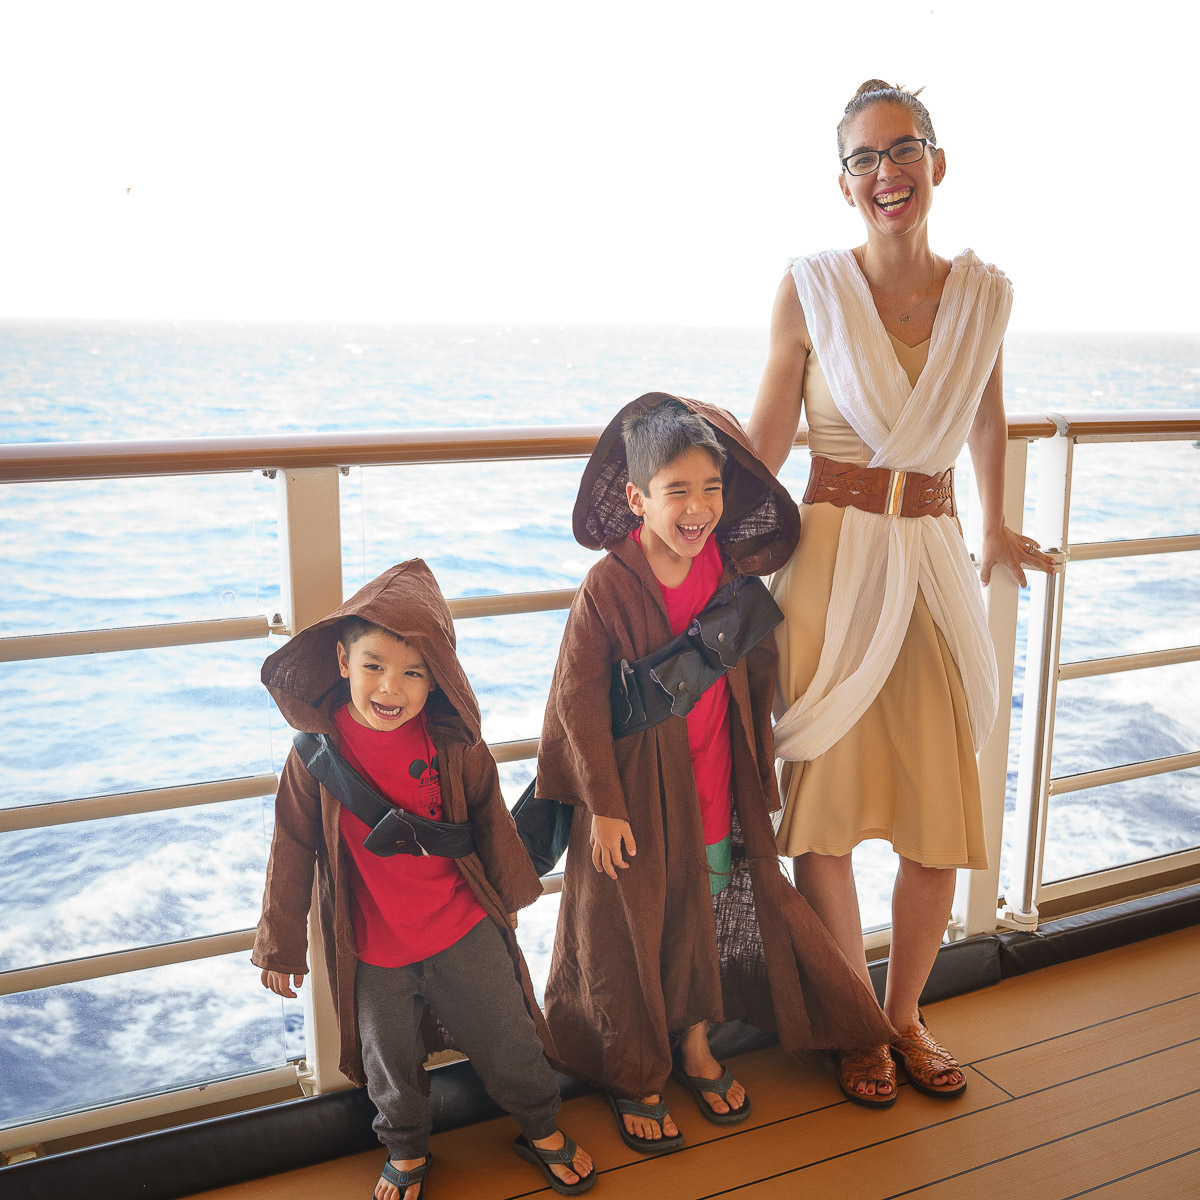 Disney Cruise Tips featured by top US Disney blogger, Marcie and the Mouse: Disney Cruise Line, Star Wars Day at Sea, Jawa and Rey costumes